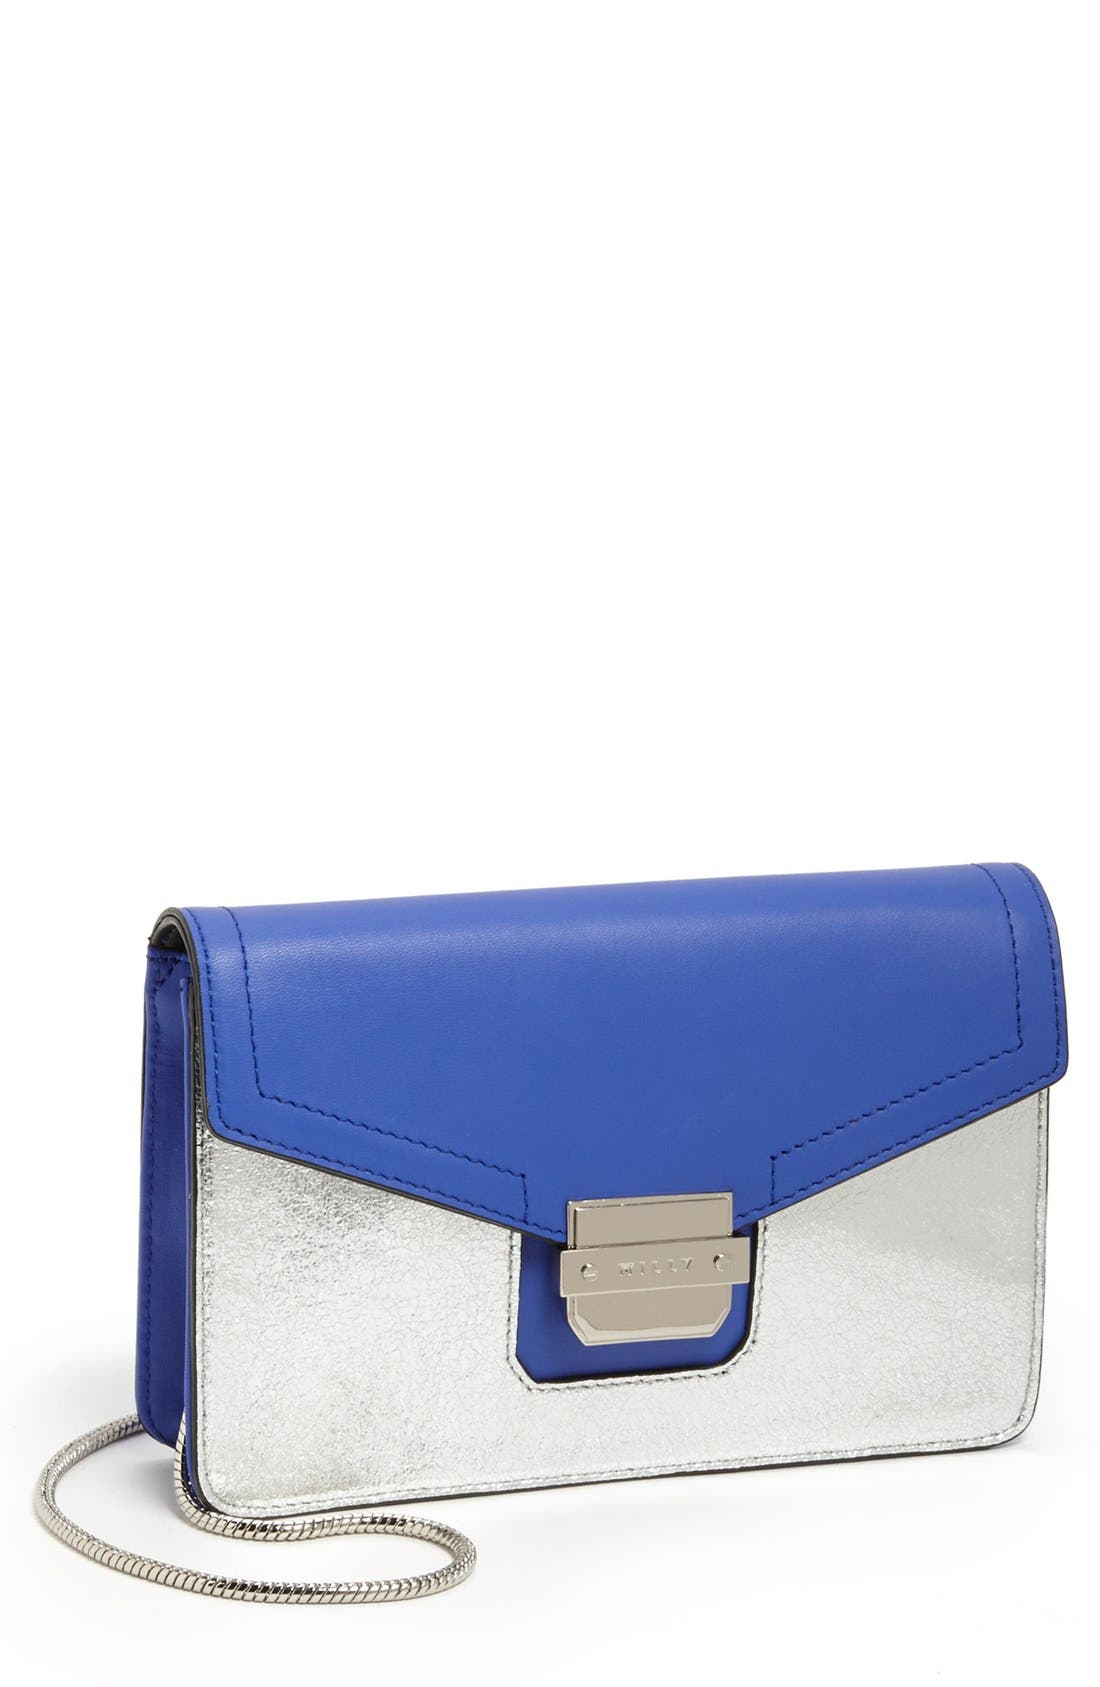 Alternate Image 1 Selected - Milly 'Colby - Mini' Leather Crossbody Bag